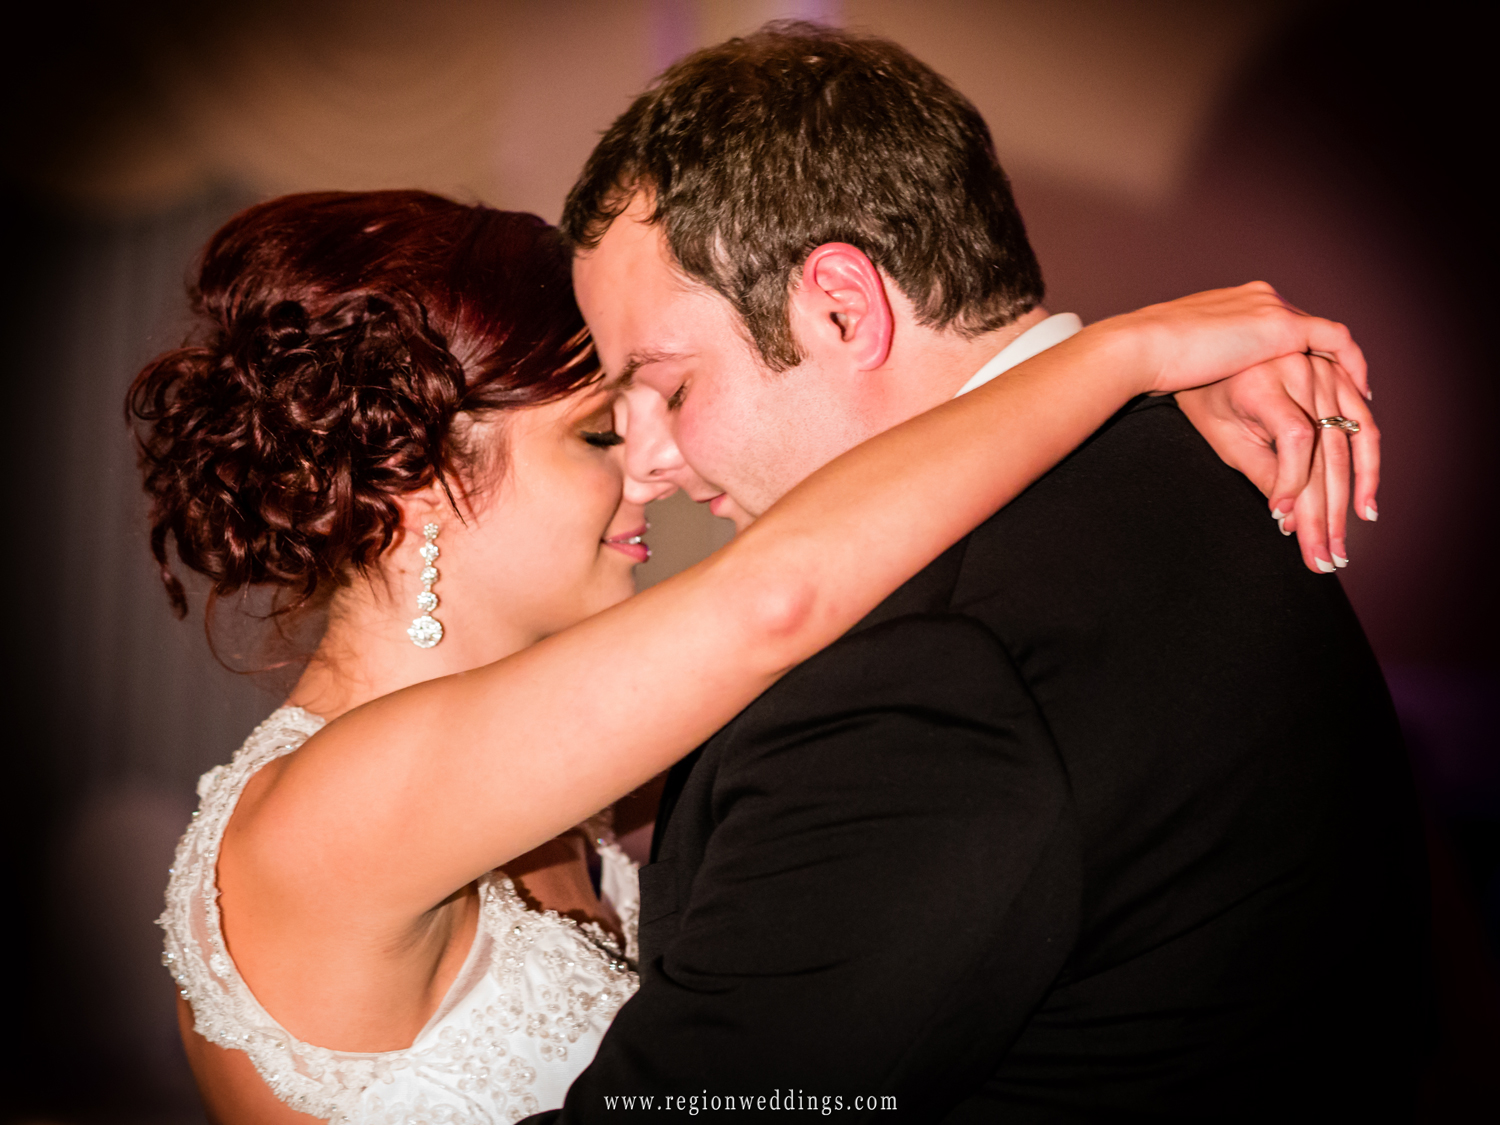 The bride and groom dance close during their reception at The Dream Palace.